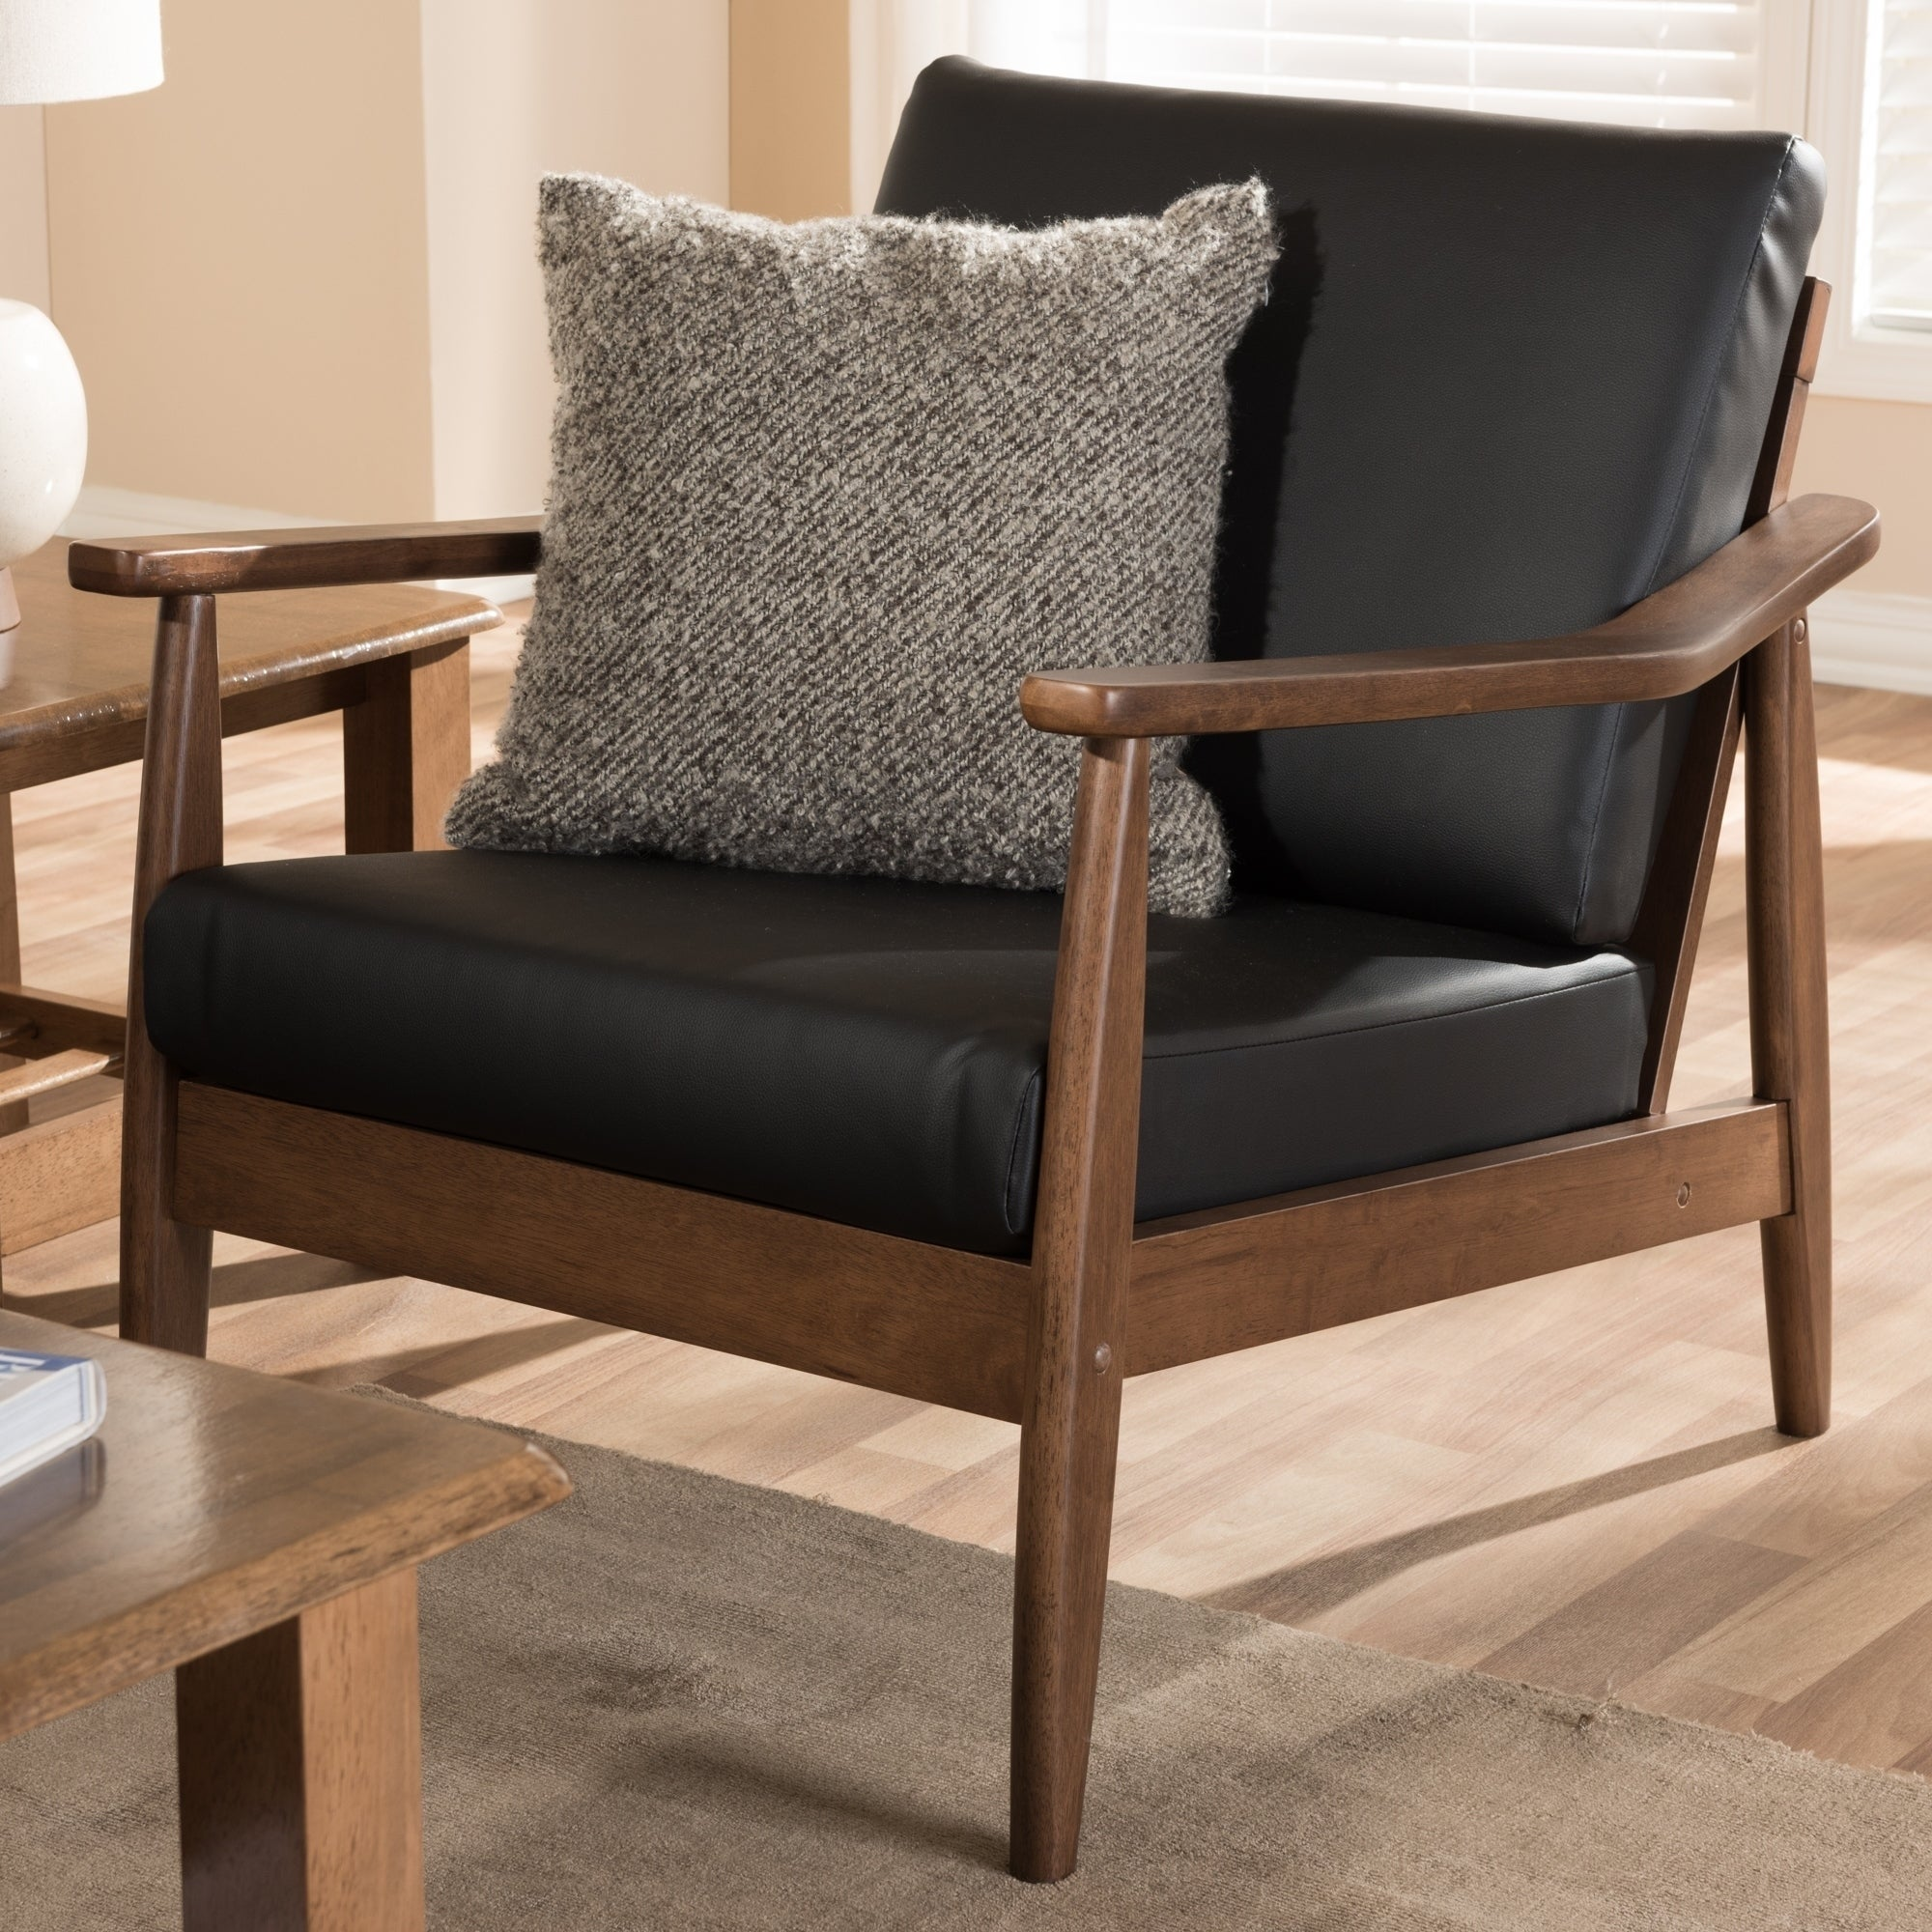 Enjoyable Mid Century Modern Living Room Chairs Shop Online At Overstock Alphanode Cool Chair Designs And Ideas Alphanodeonline